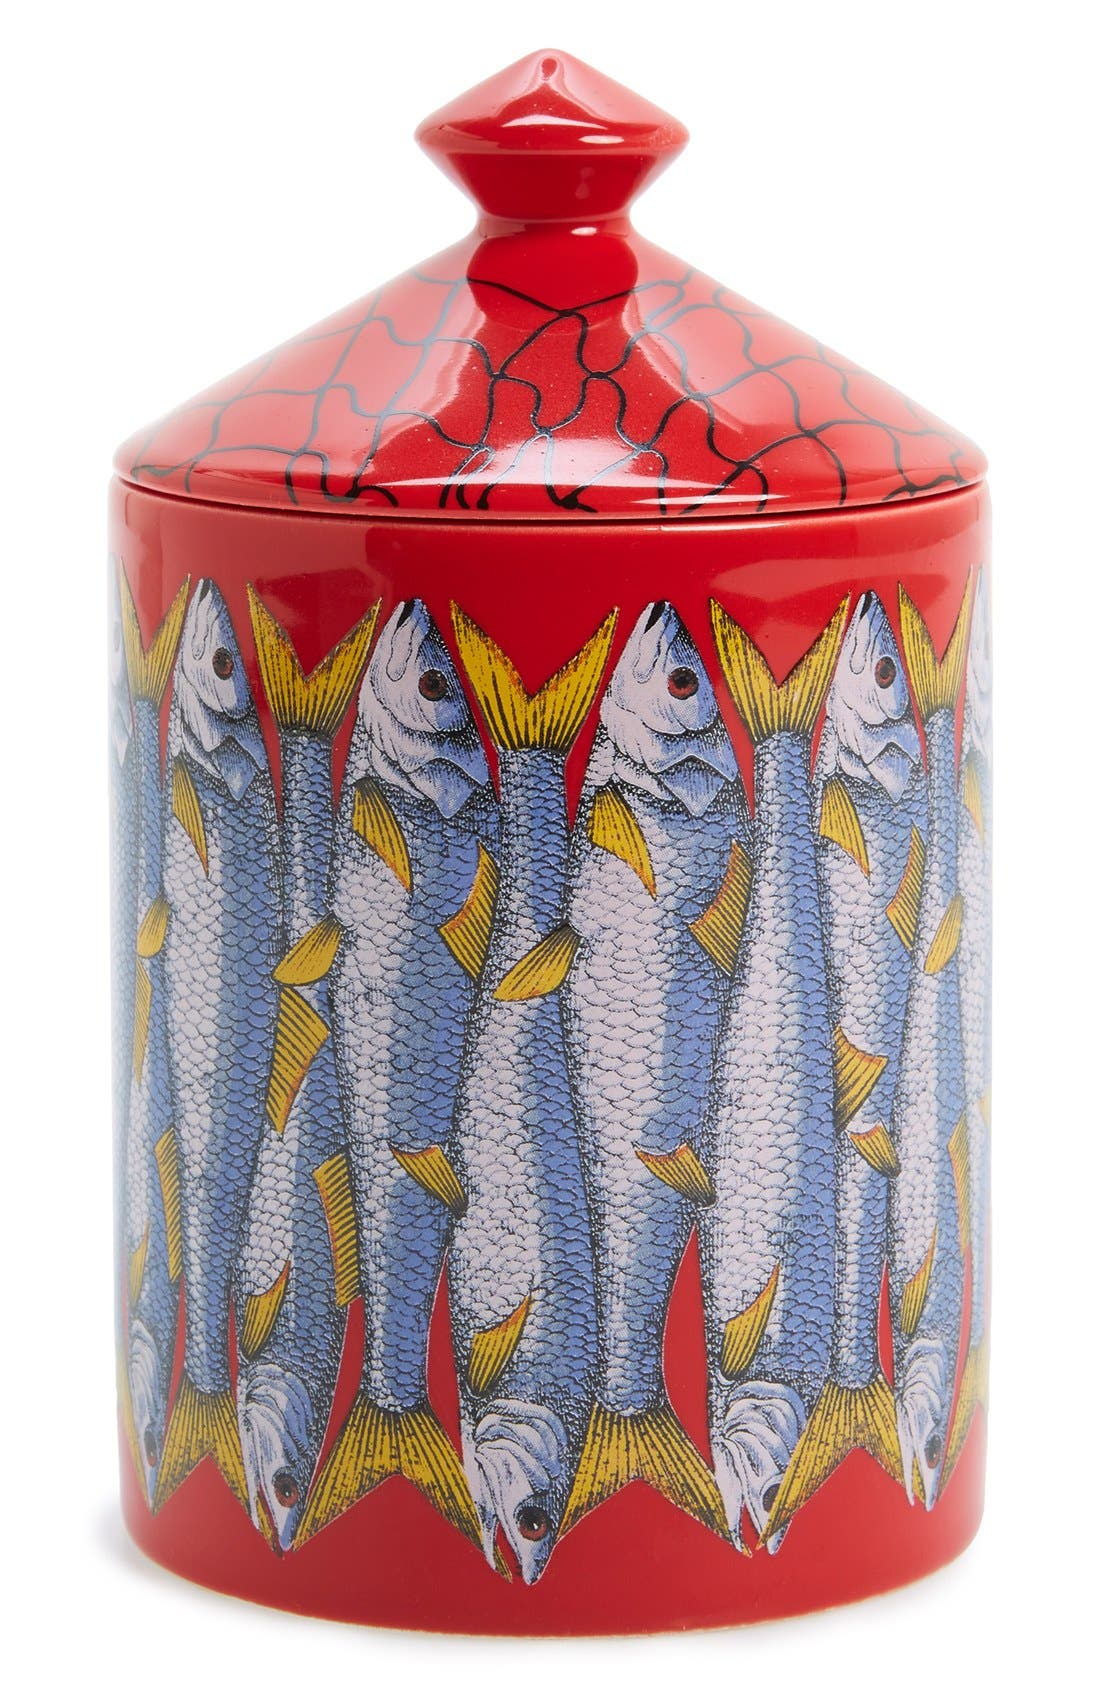 'Sardine Rosso' Lidded Candle,                         Main,                         color, 000